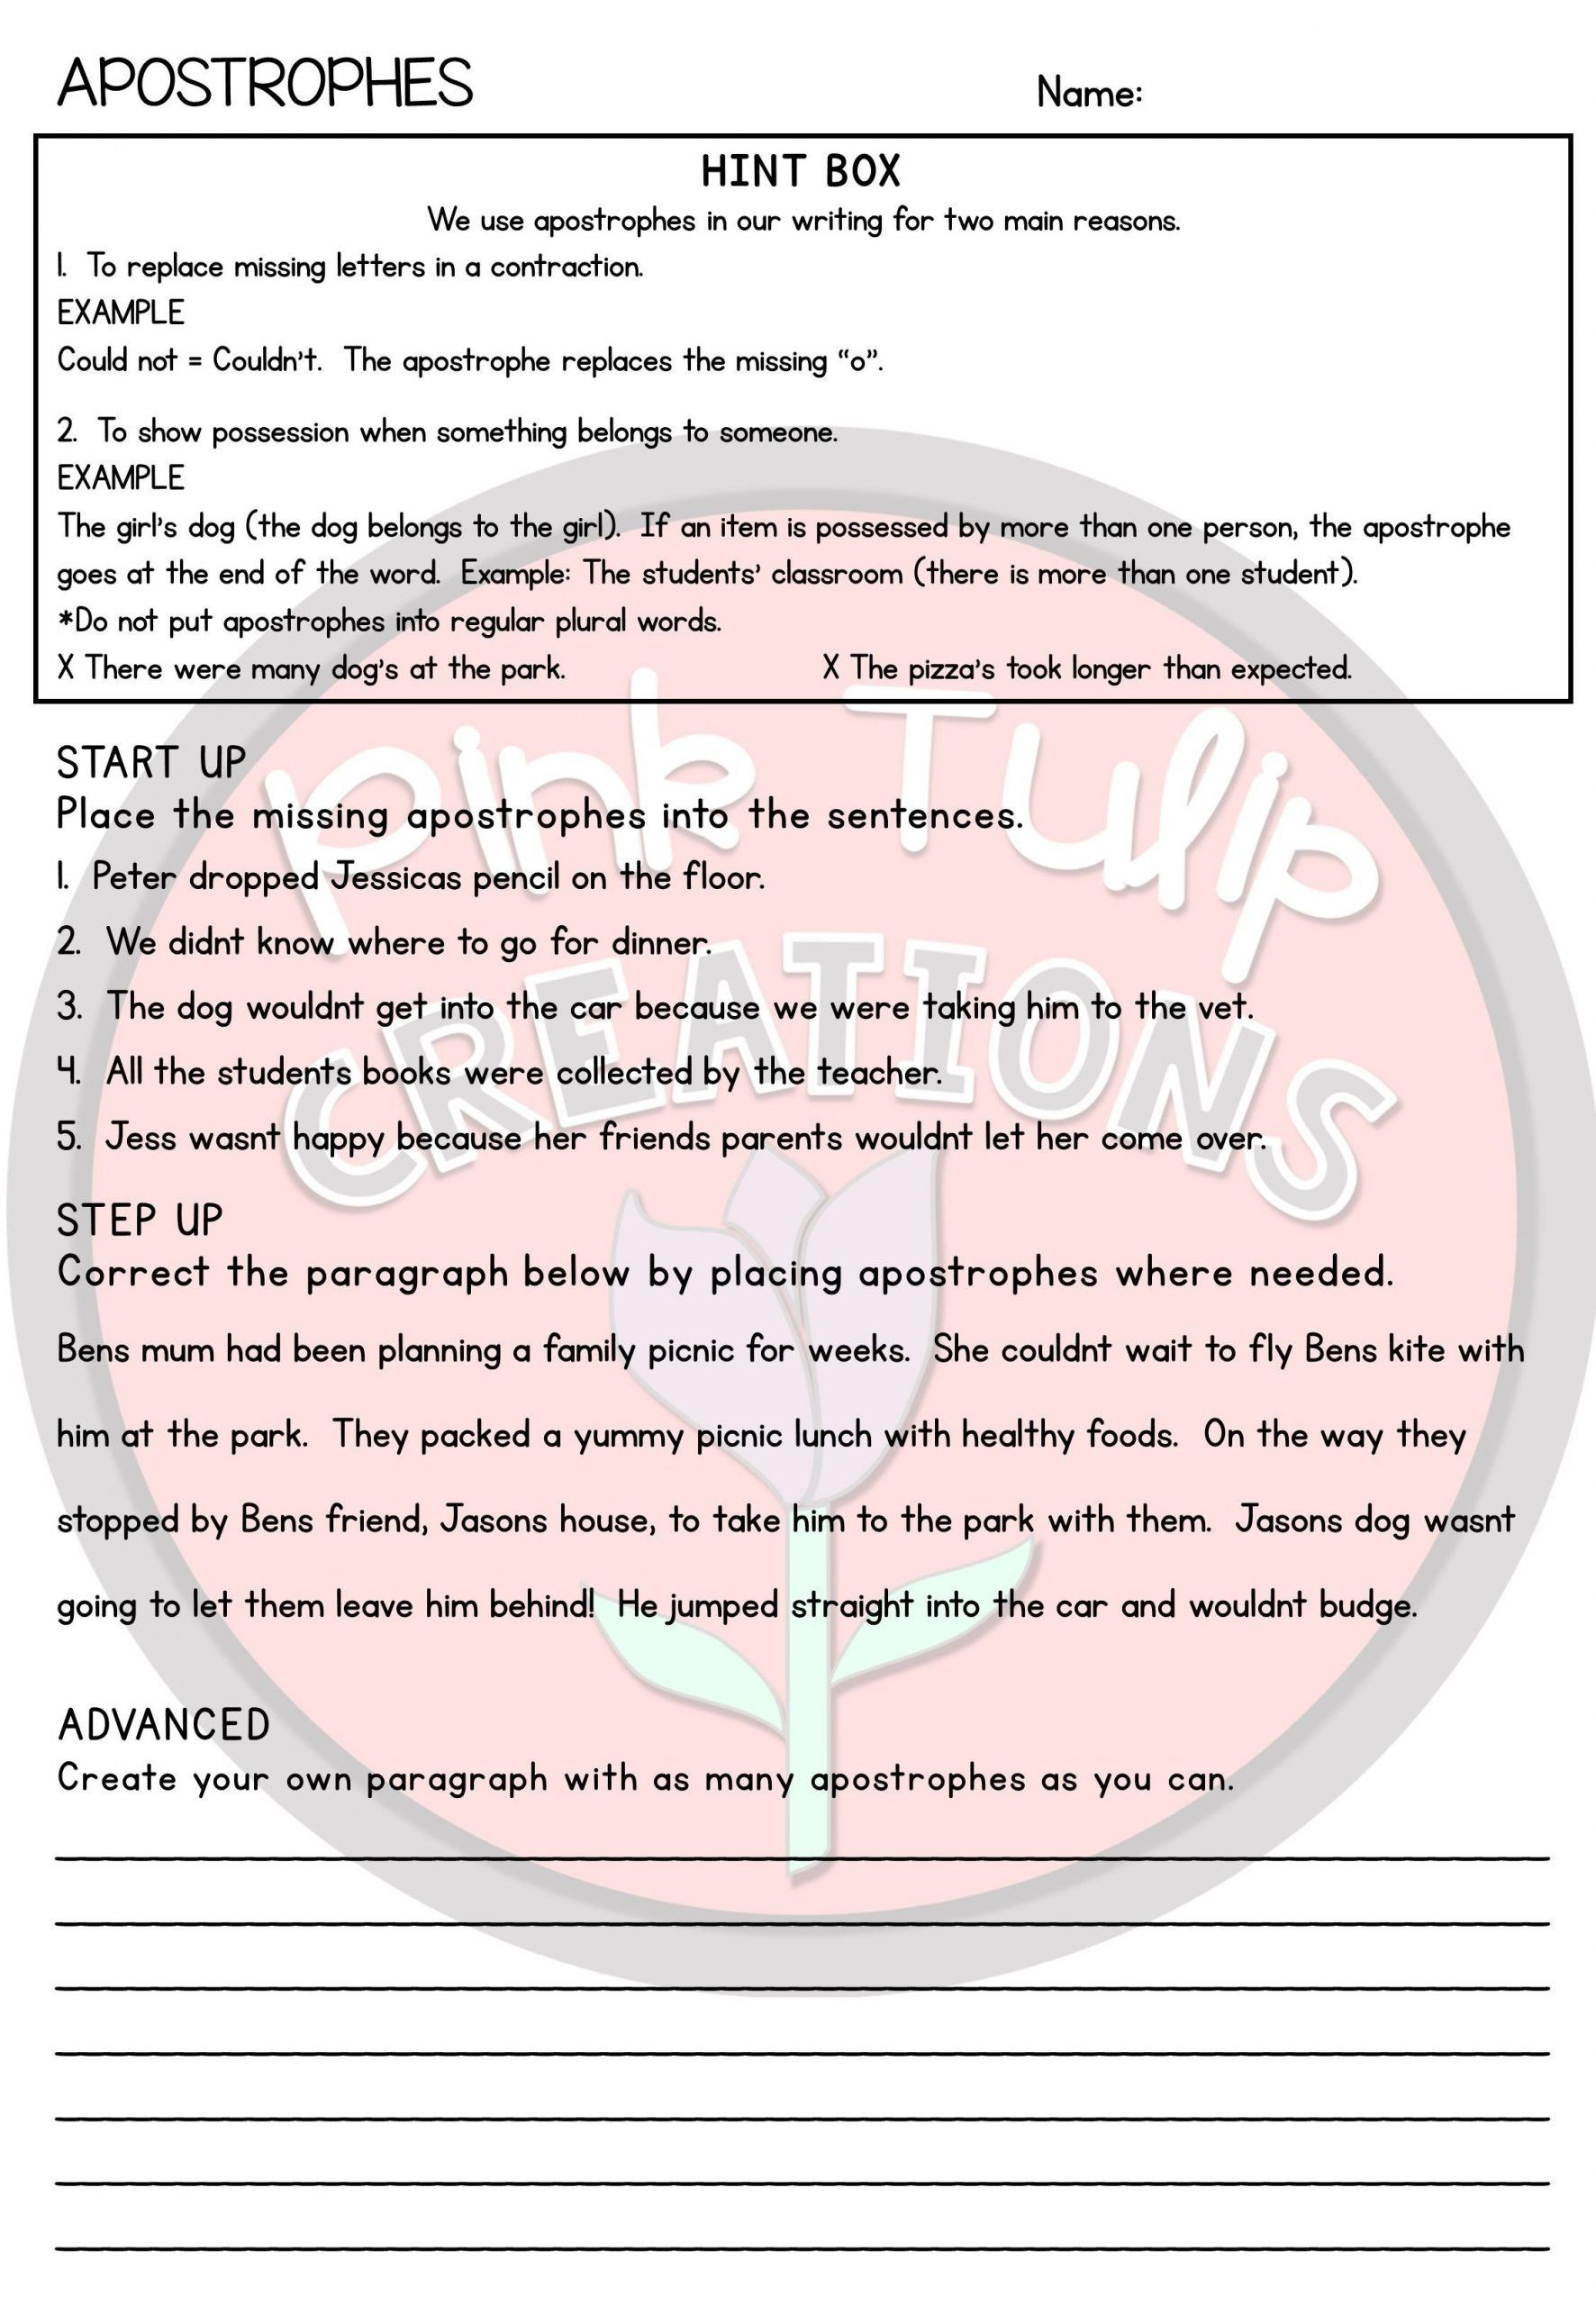 Drawing Conclusions Worksheets 5th Grade Grammar Worksheet Pack in 2020    Grammar worksheets [ 2560 x 1772 Pixel ]